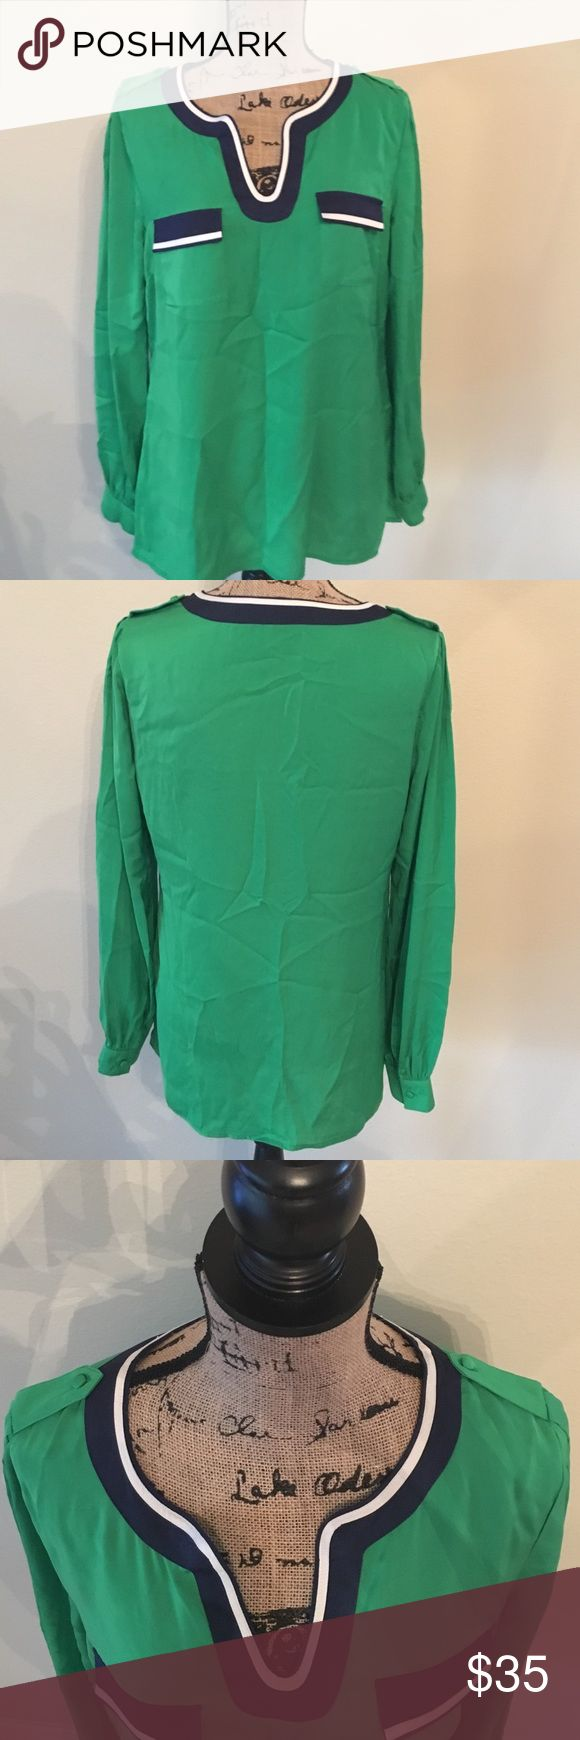 👉NWOT👈 Nautical Blouse Beautiful long sleeve blouse in excellent condition, never worn. Purchased at Stein Mart. Has a nautical feel with a pop of green. Dress it up with navy slacks and blazer or dress it down with dark denim jeans ...of course keep the blazer...or not! 😘👍 You can't go wrong. Would like to get as of purchased price but will take offers. Tops Blouses